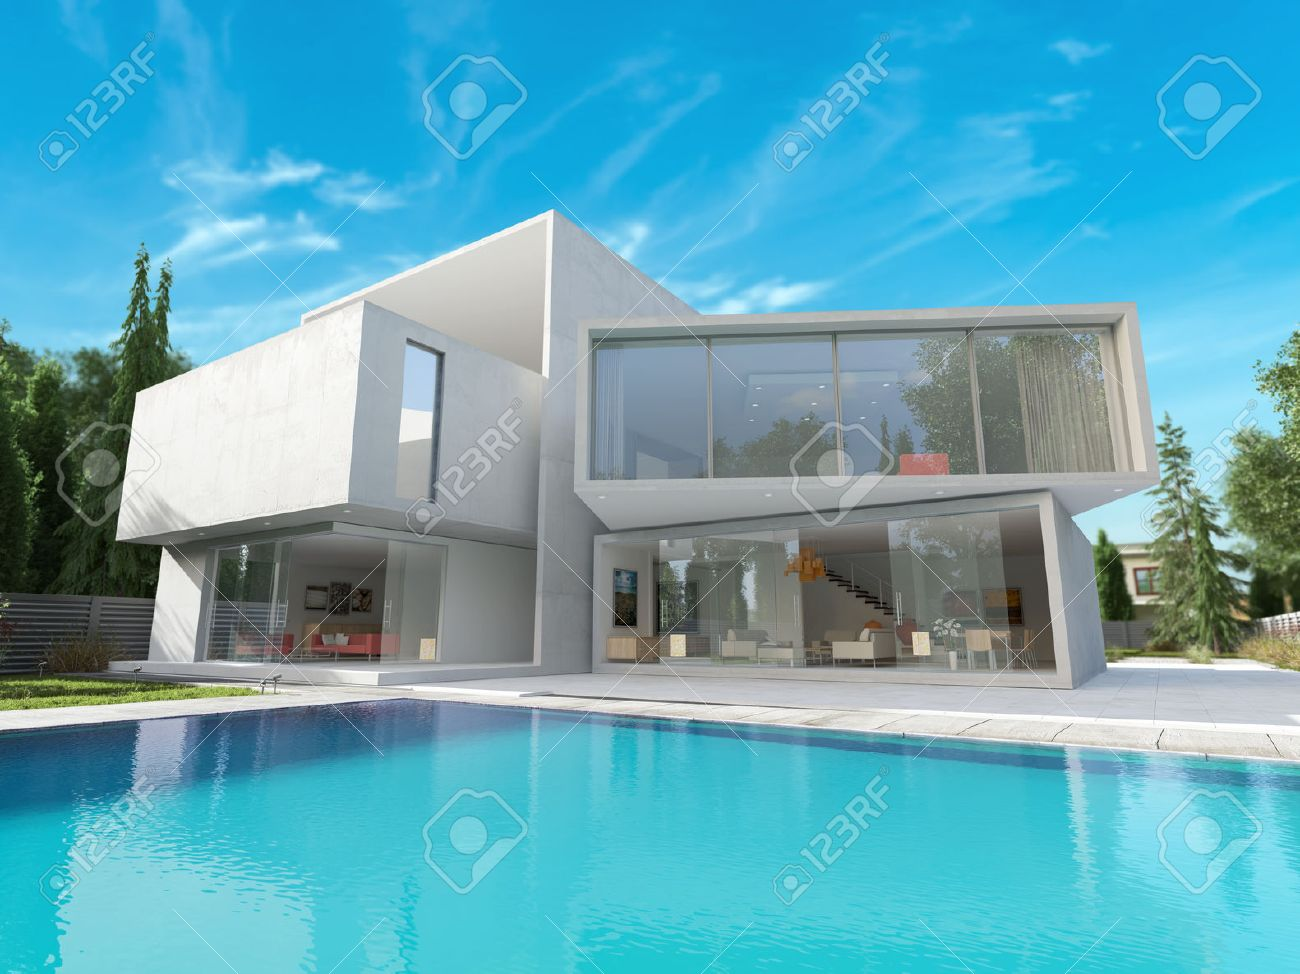 External View Of A Contemporary House With Pool Stock Photo, Picture ...